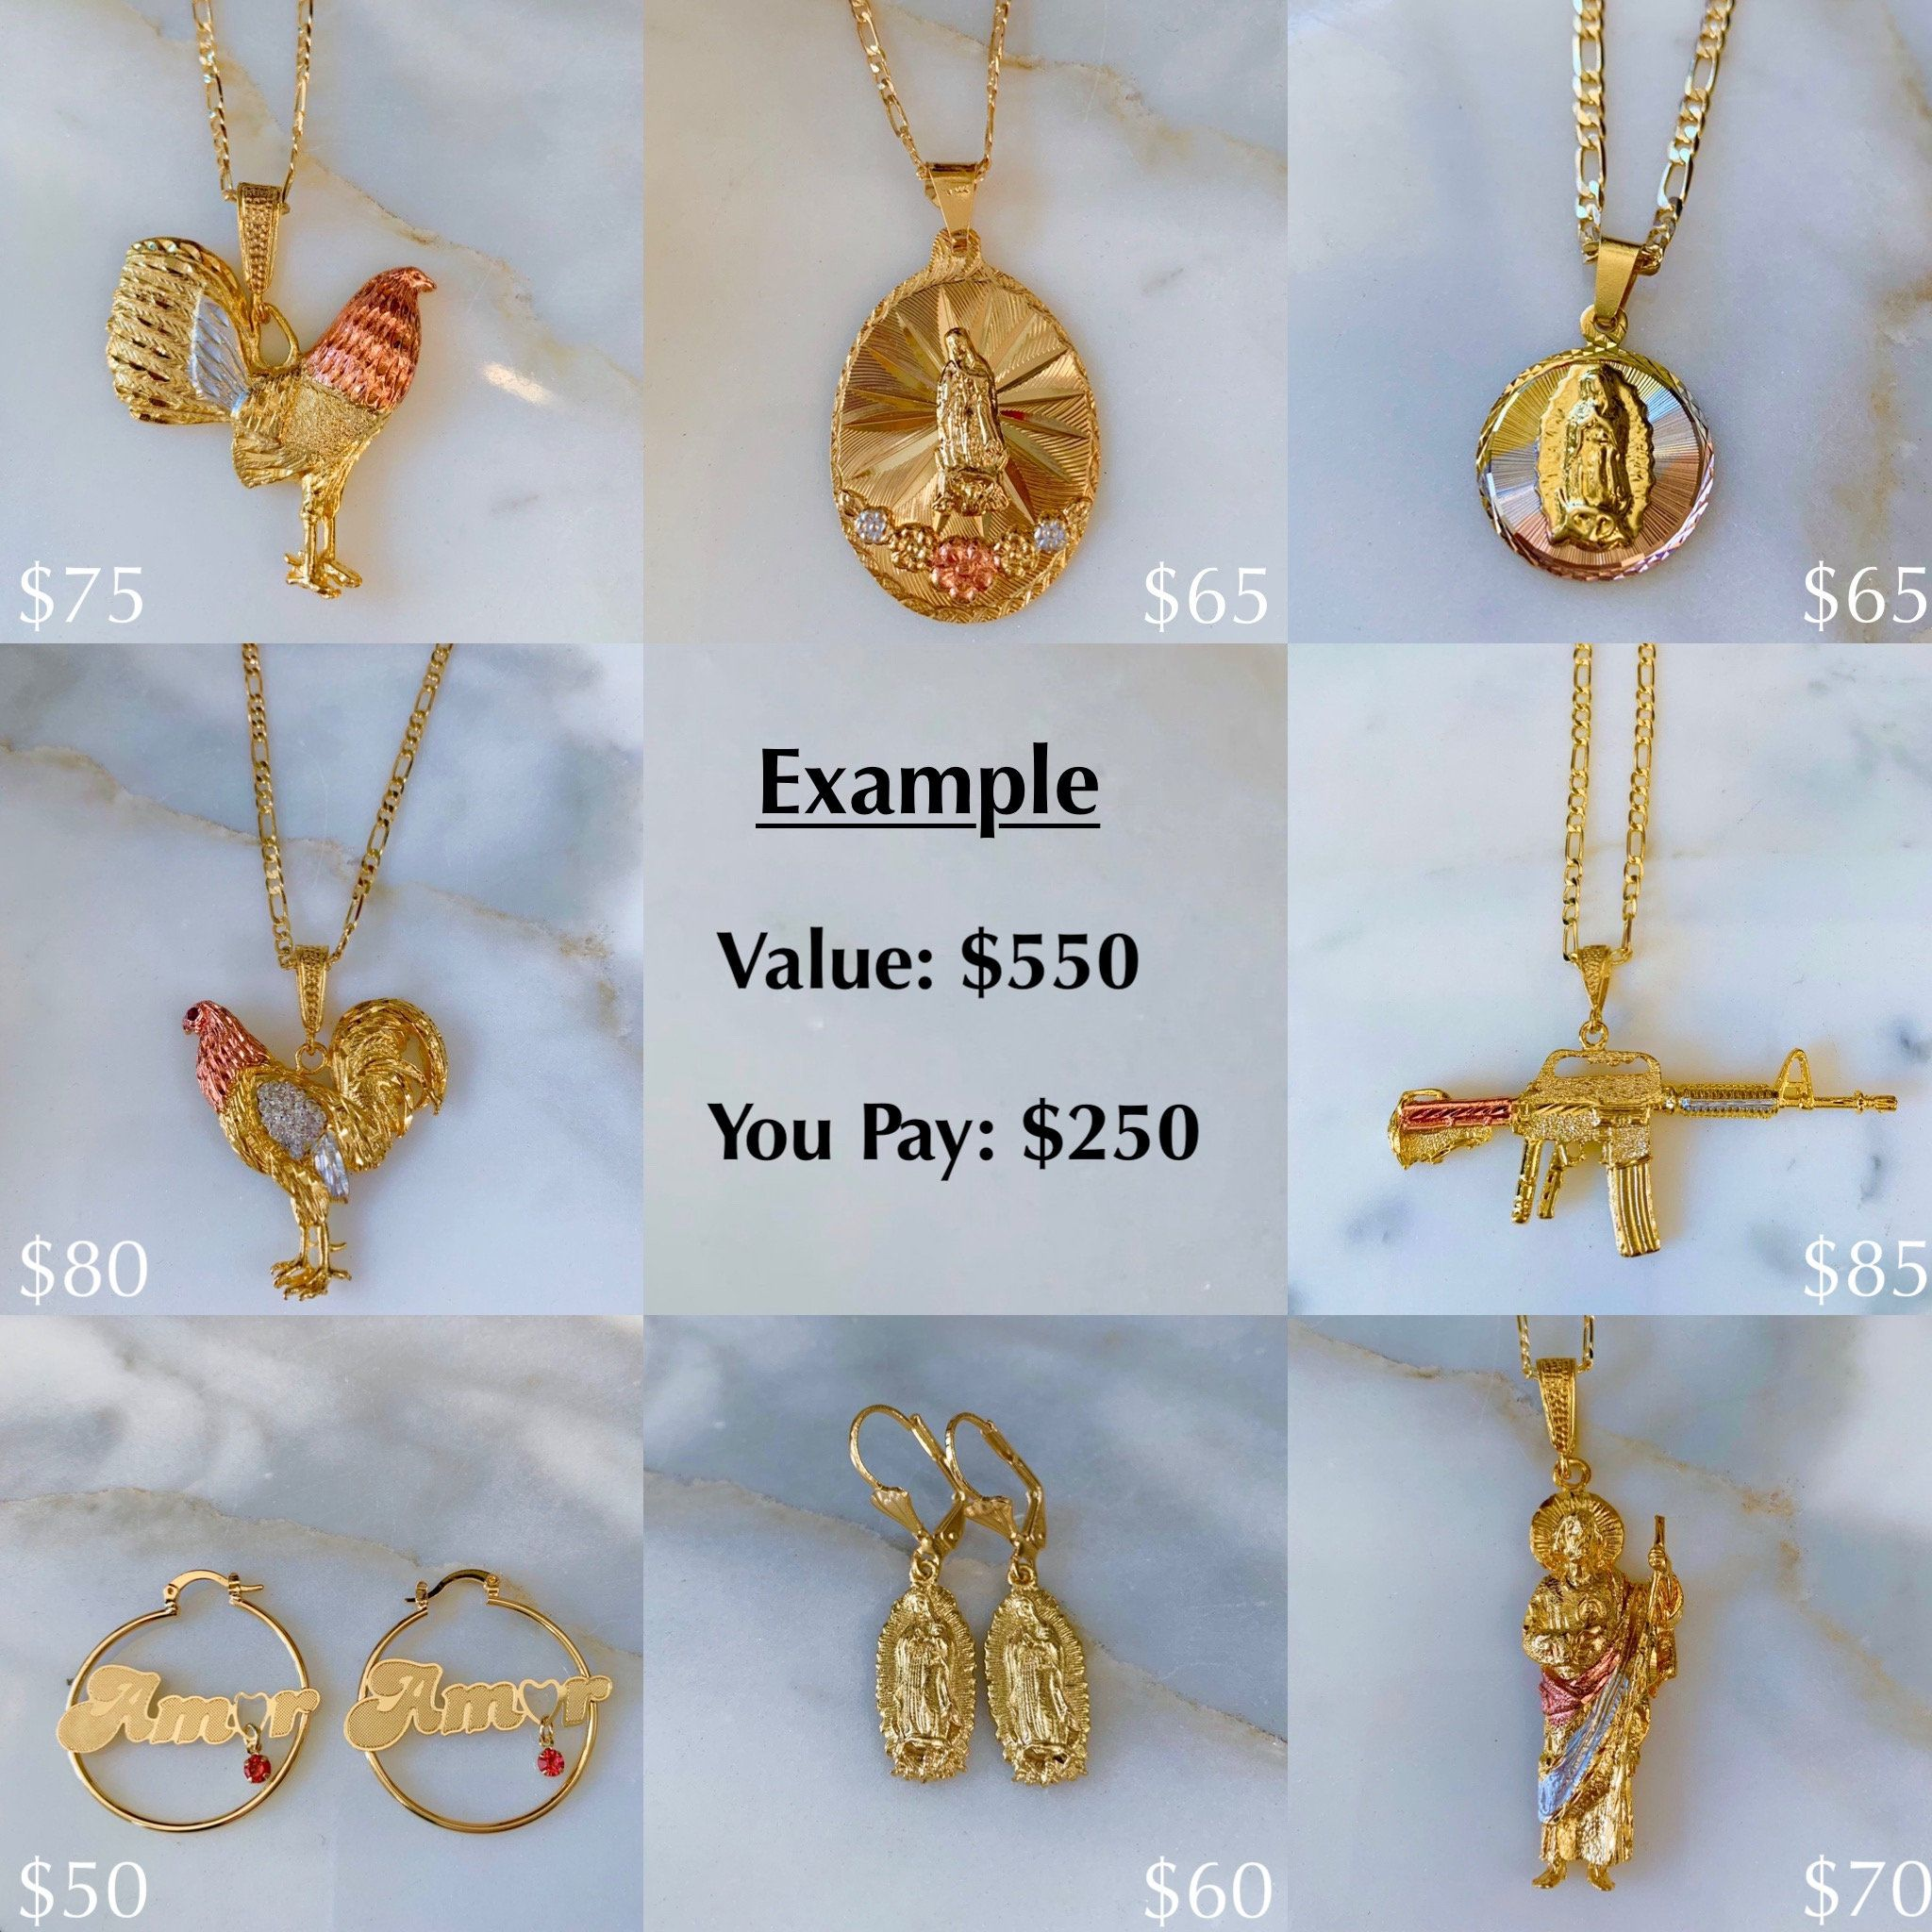 Mystery Packages Of Gold Dipped Jewelry At Half The Price